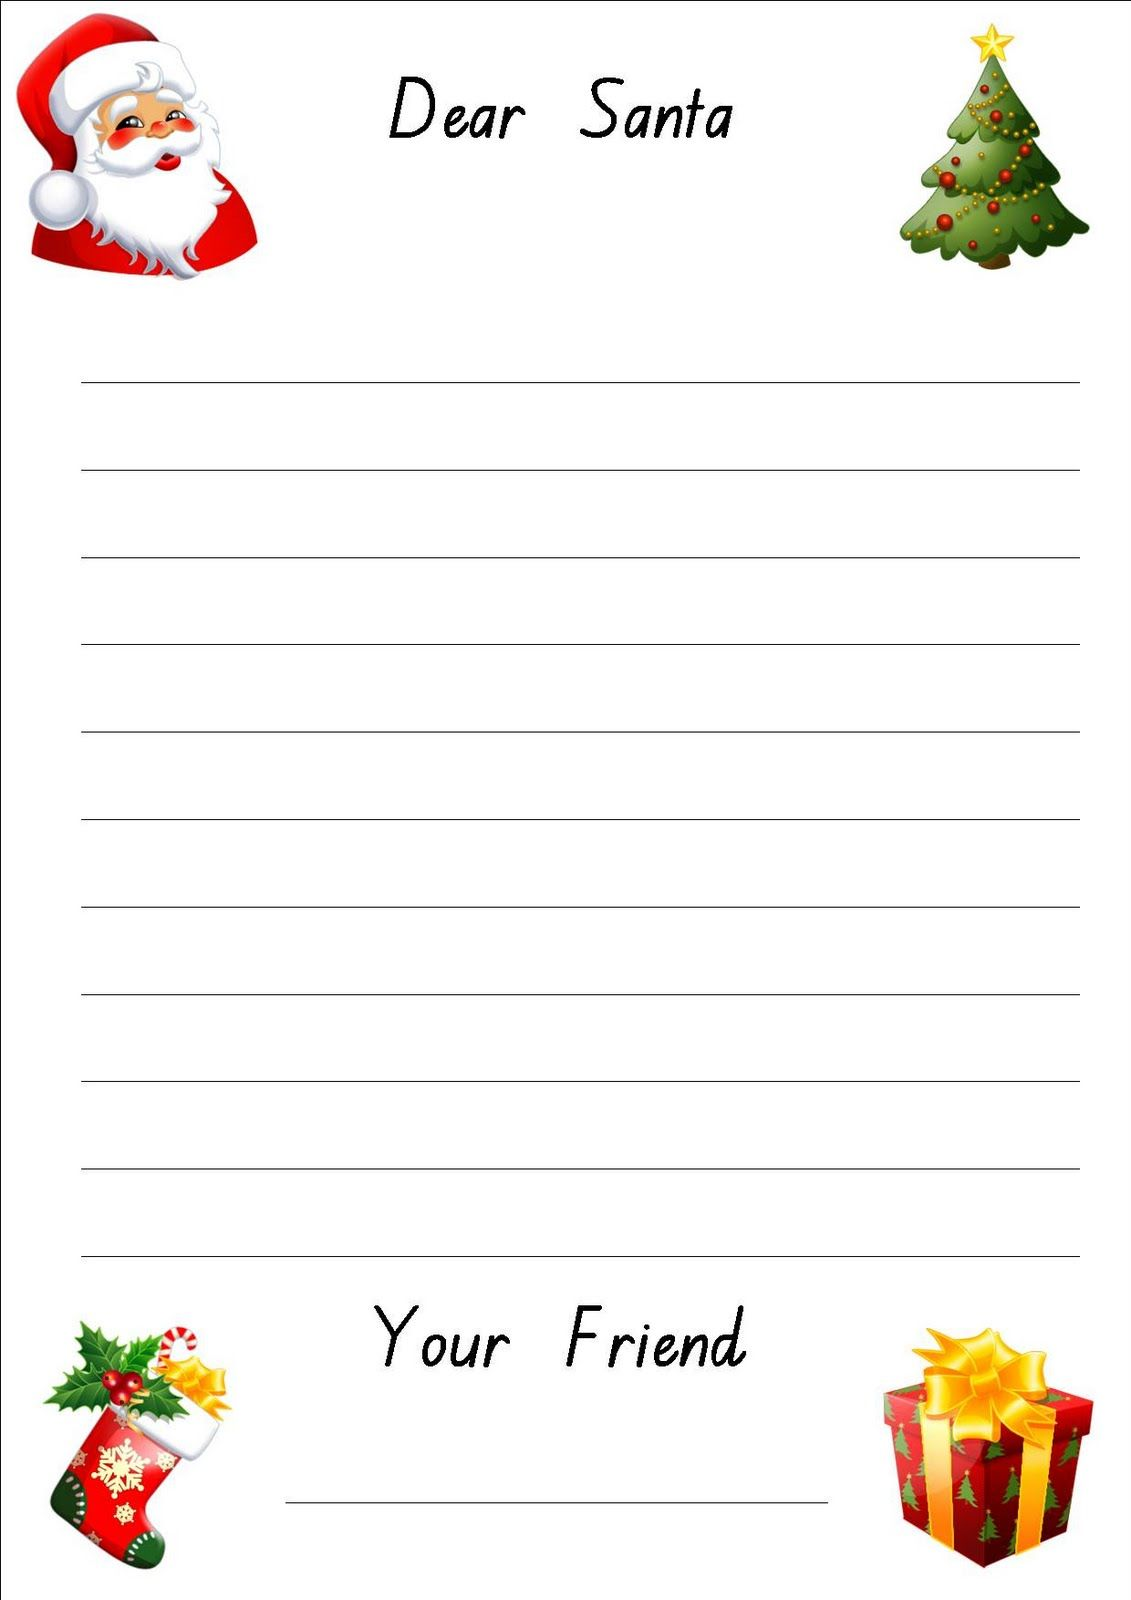 Lined Christmas Paper For Letters